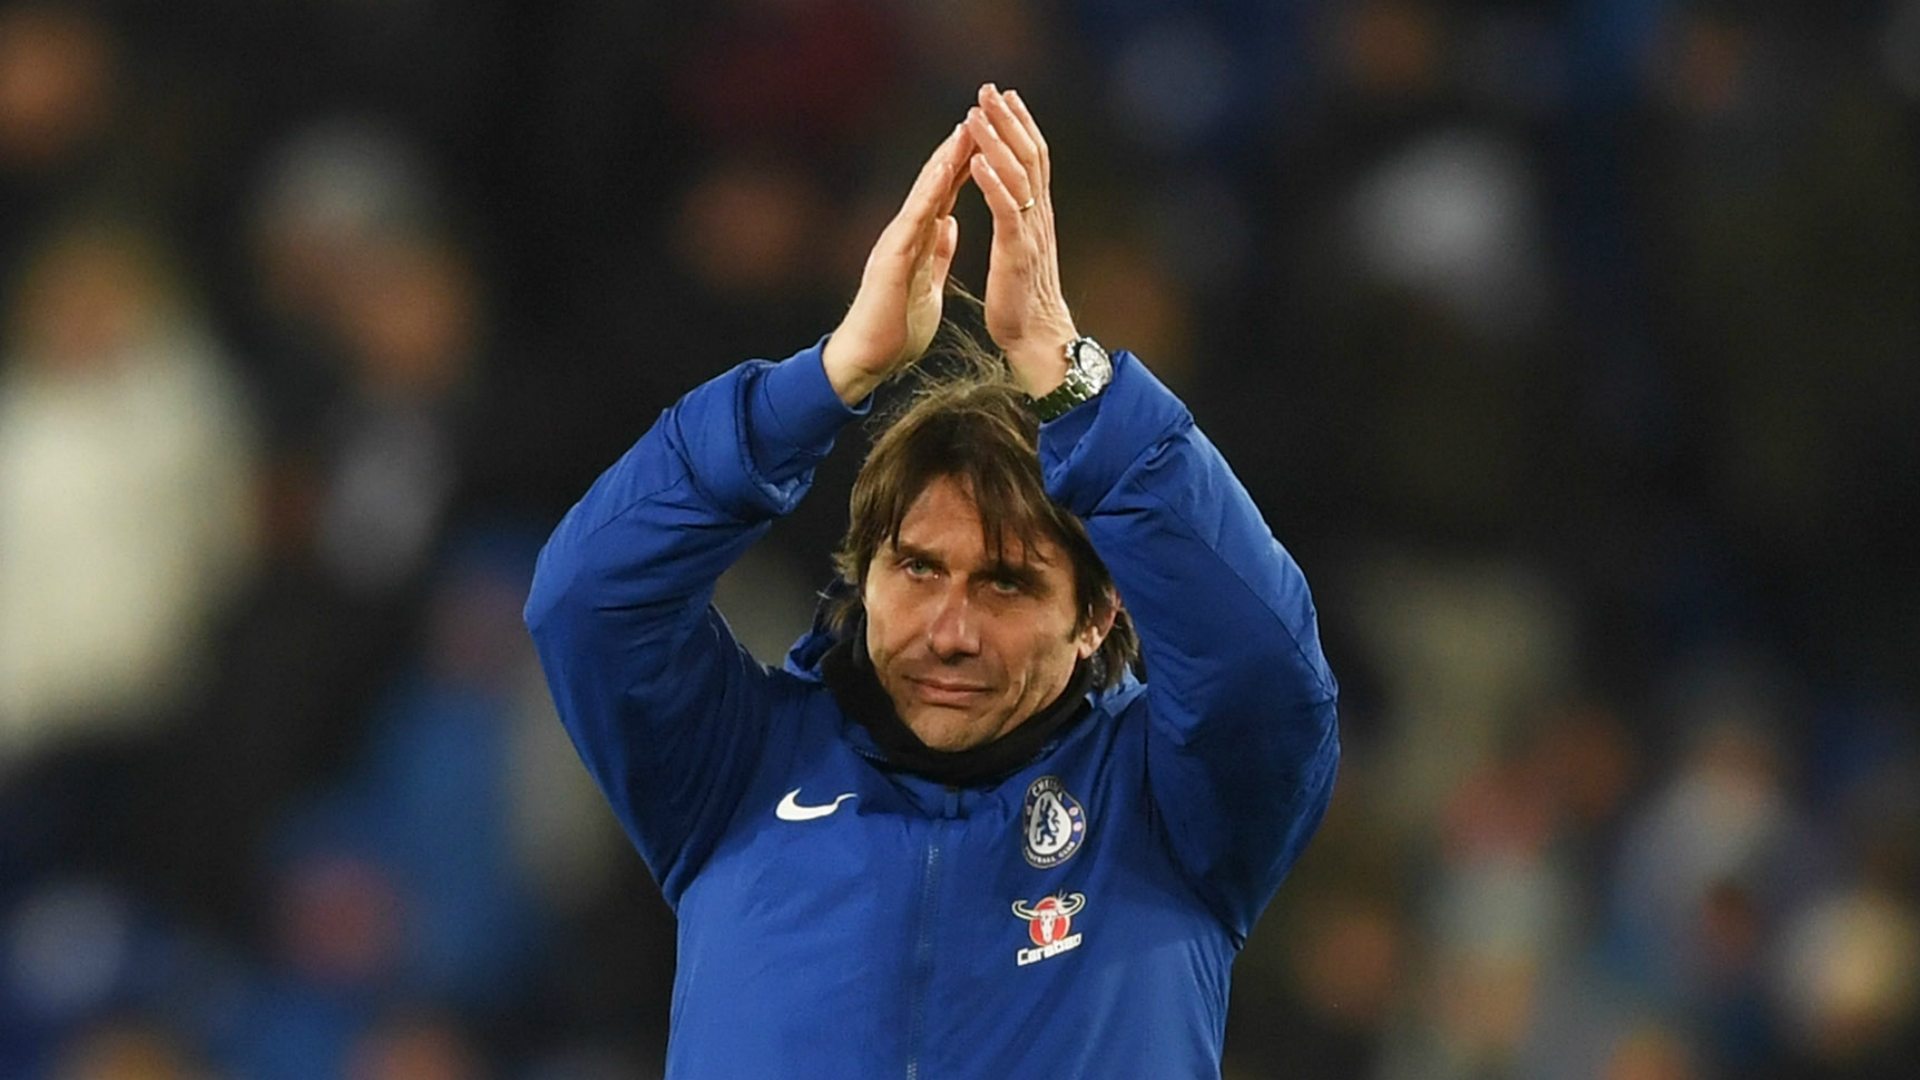 Chelsea v Tottenham Premier League Preview